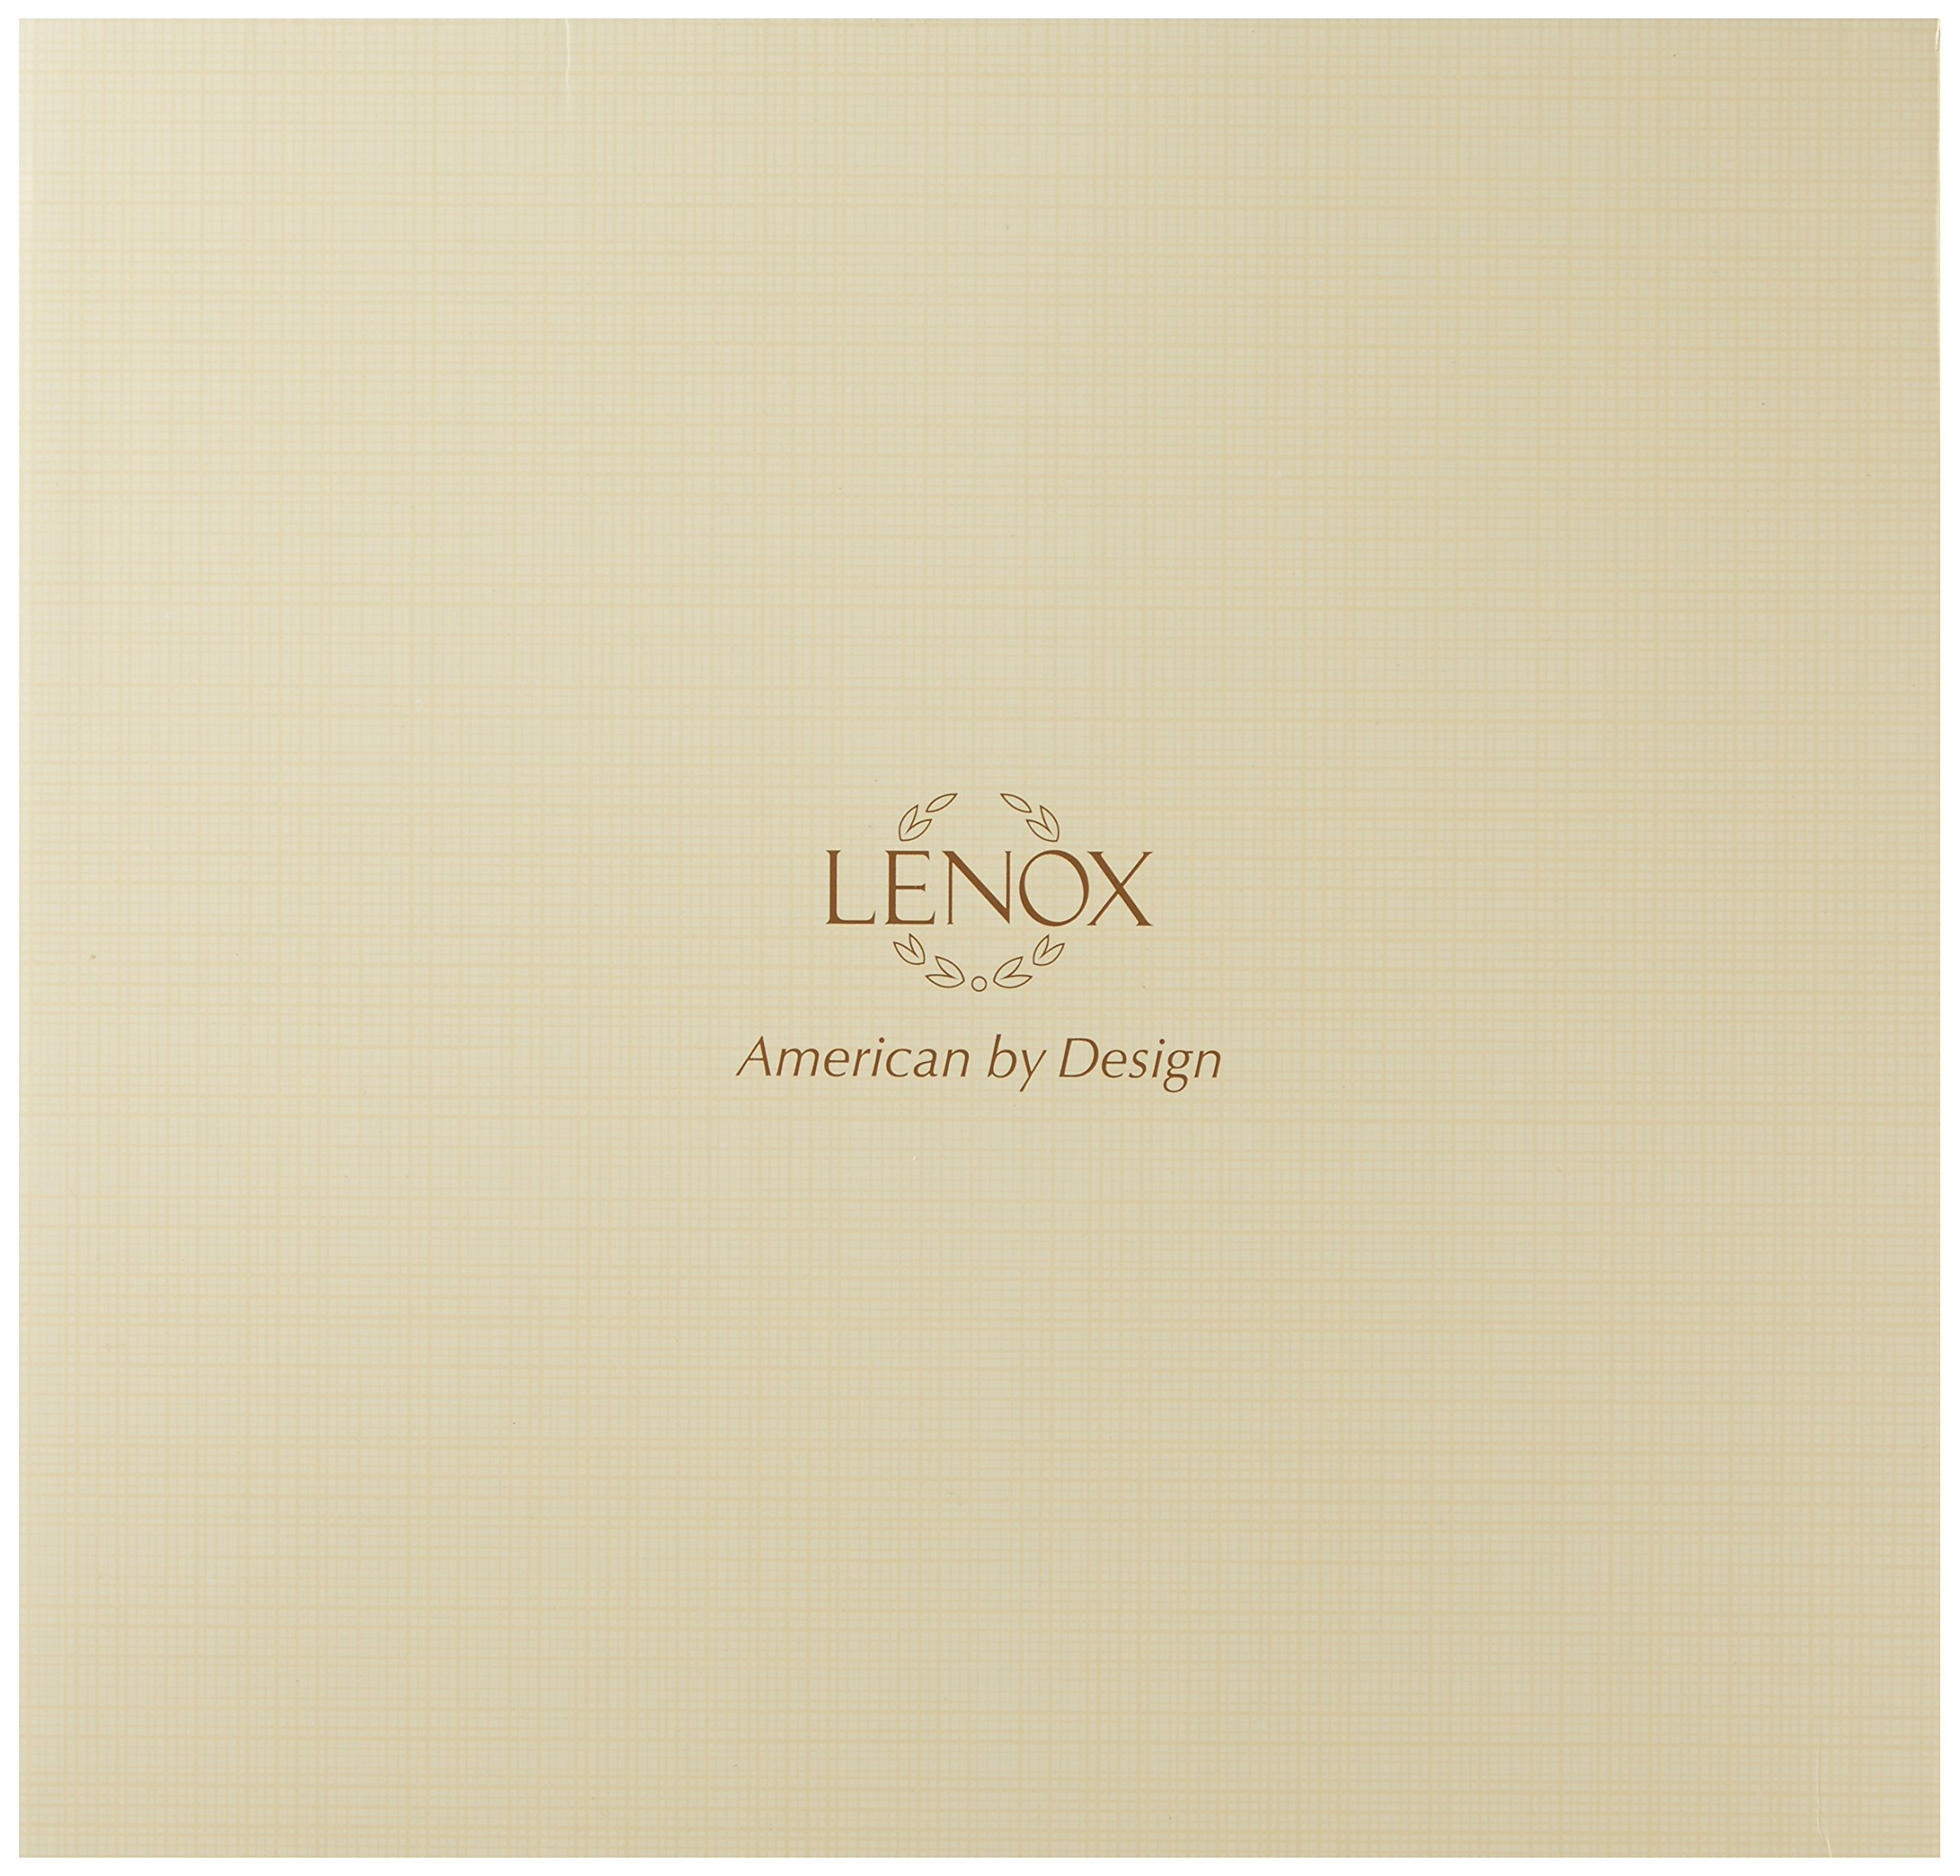 Lenox Eternal Gold-Banded Fine China 5-Piece Place Setting, Service for 1 by Lenox (Image #2)